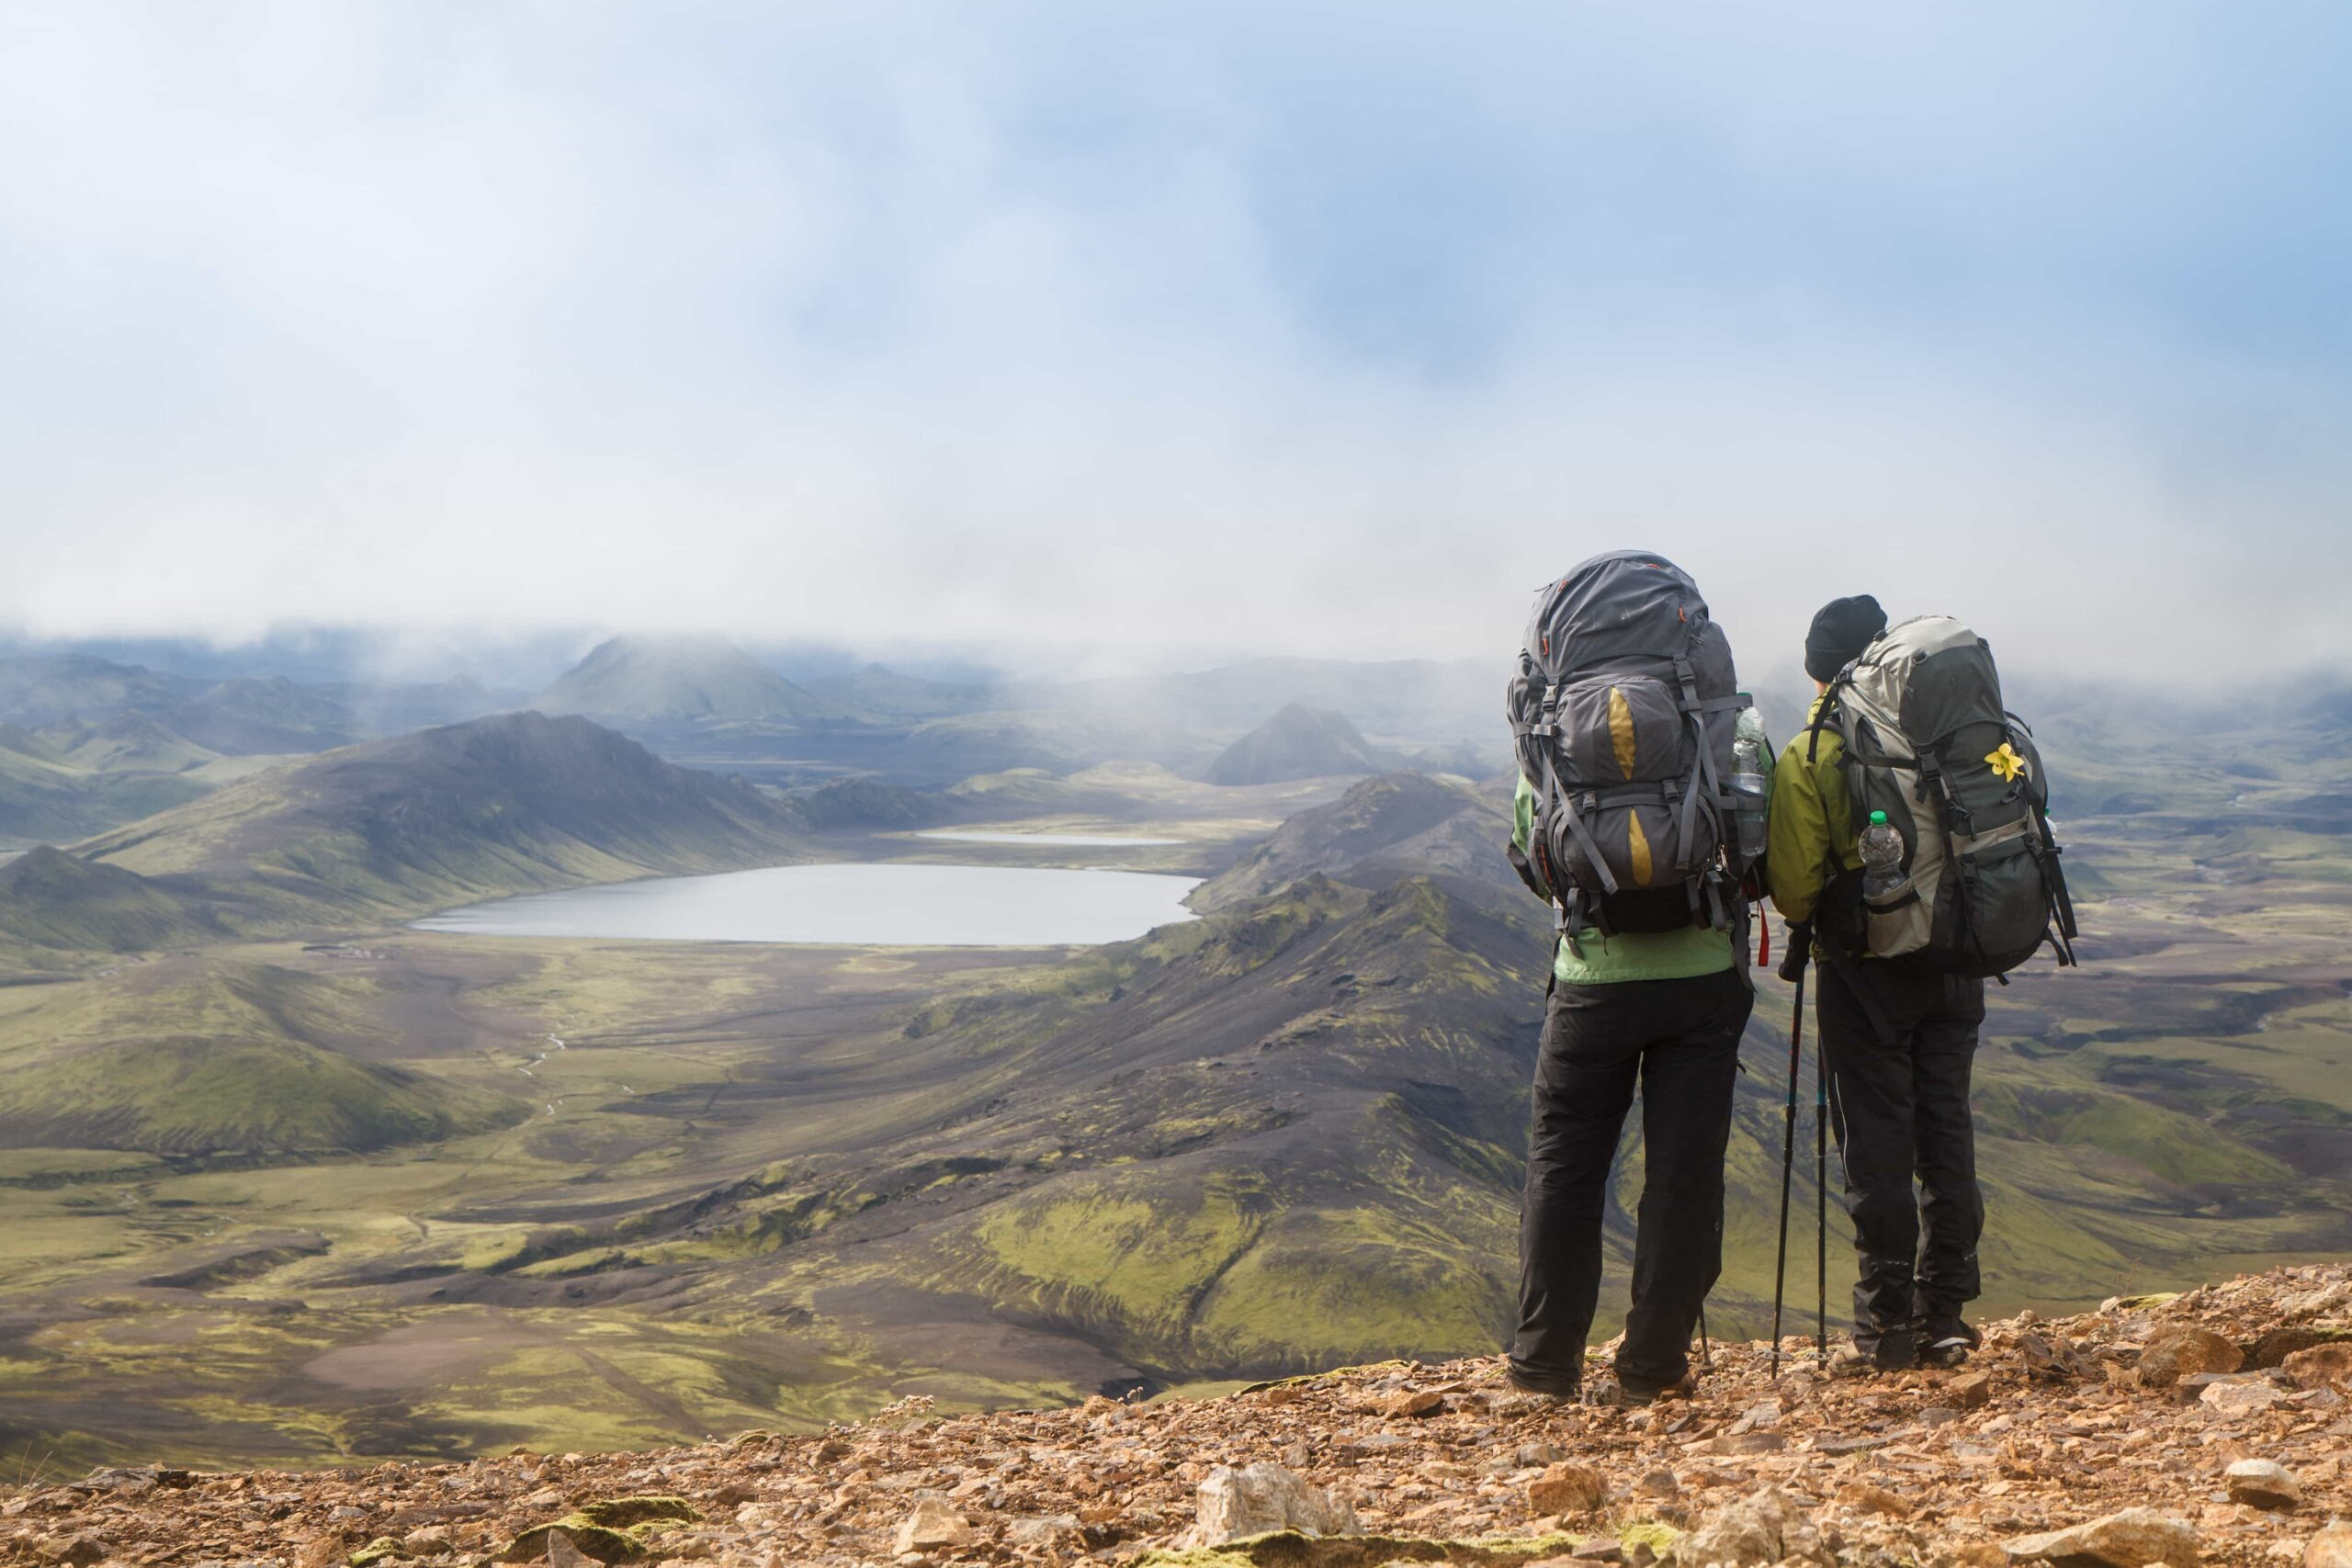 Honeymoon in Iceland, two people hiking in the highlands of Iceland